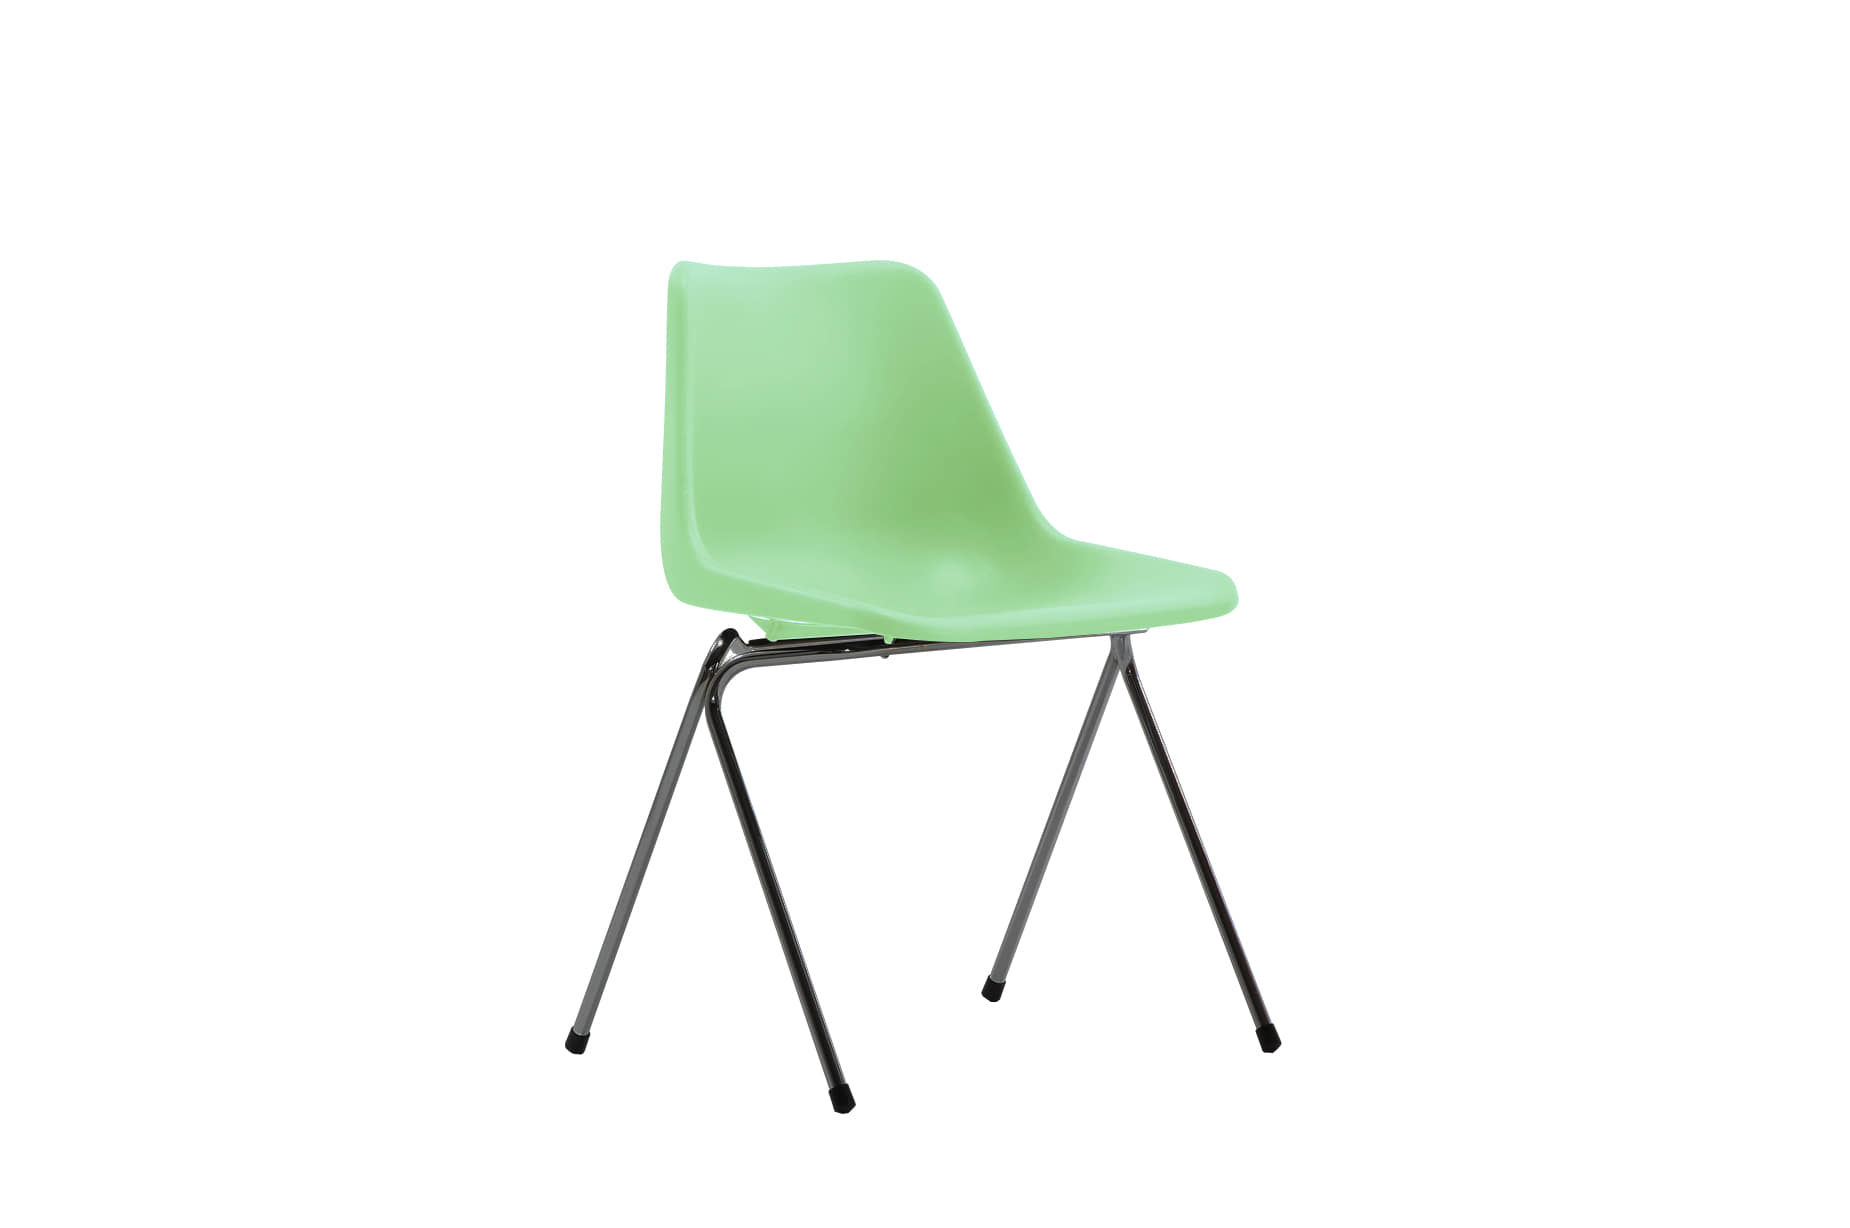 (주)도이치[BRITISHER] POLYPROP chair by Robinday, 1963 / black leg / Special Edition _English green for BRITISHER